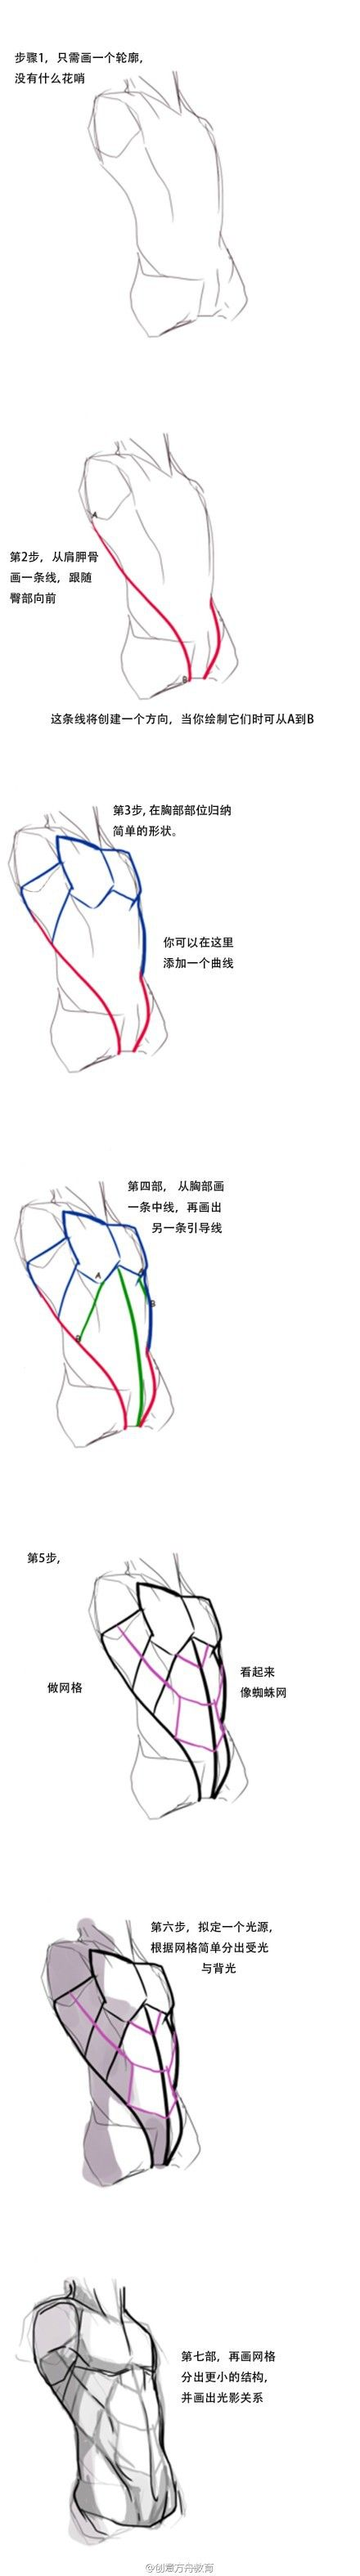 (Male) Torso Study - details on placement of muscles. All notes are in Japanese!